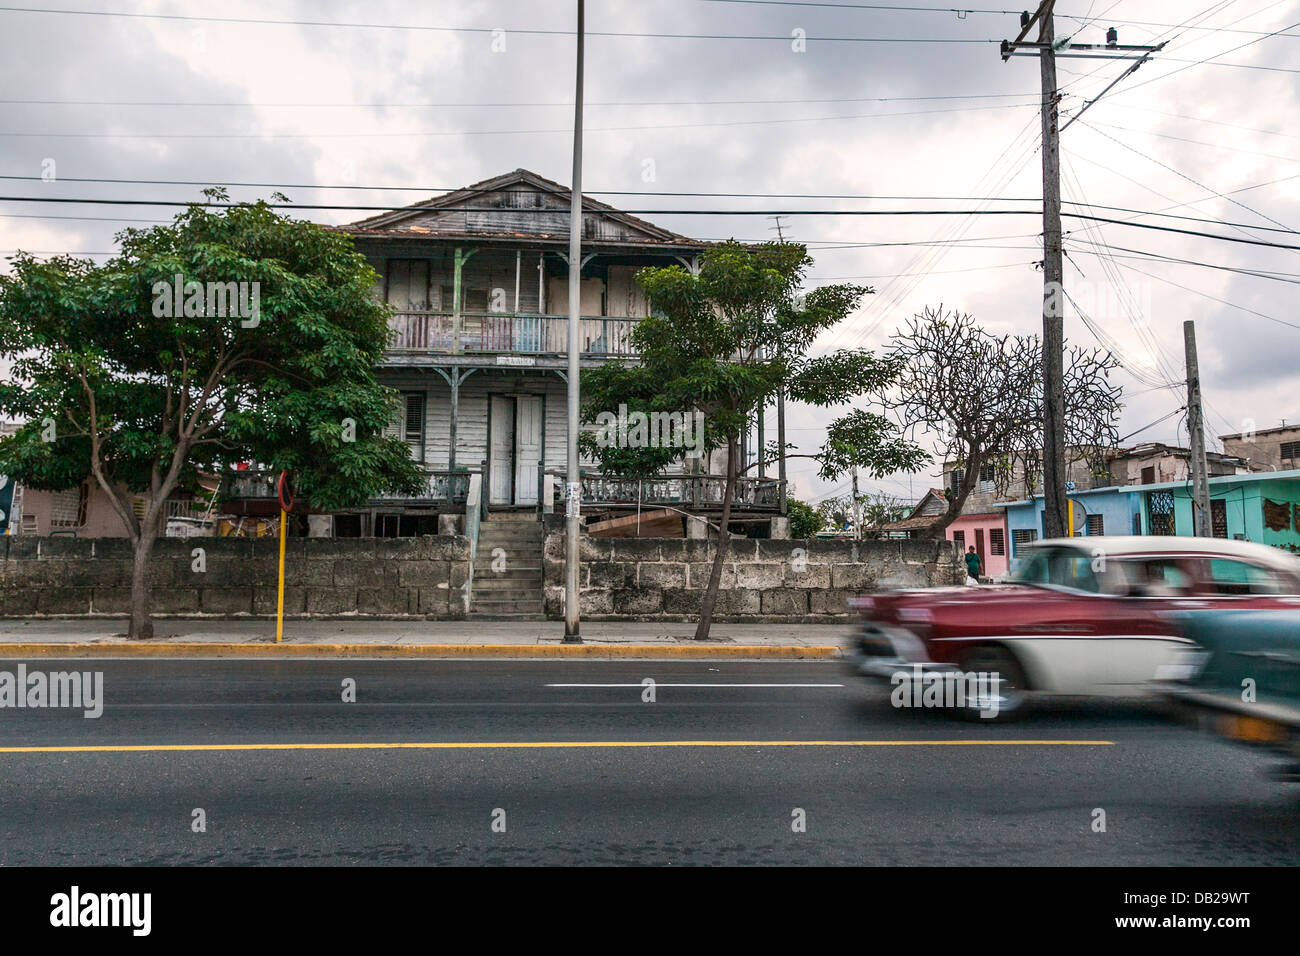 Old colonial house and moving cars, Cuba - Stock Image